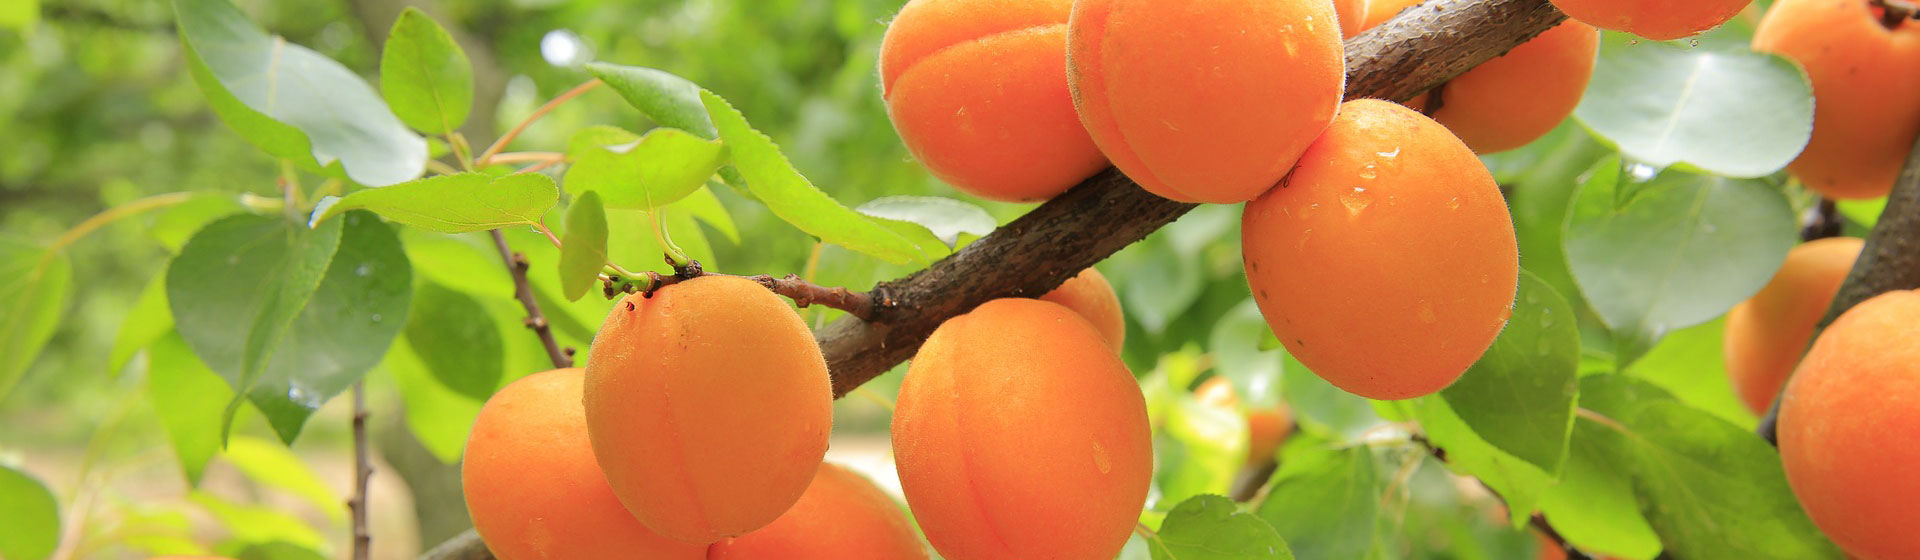 apricots-on-trees